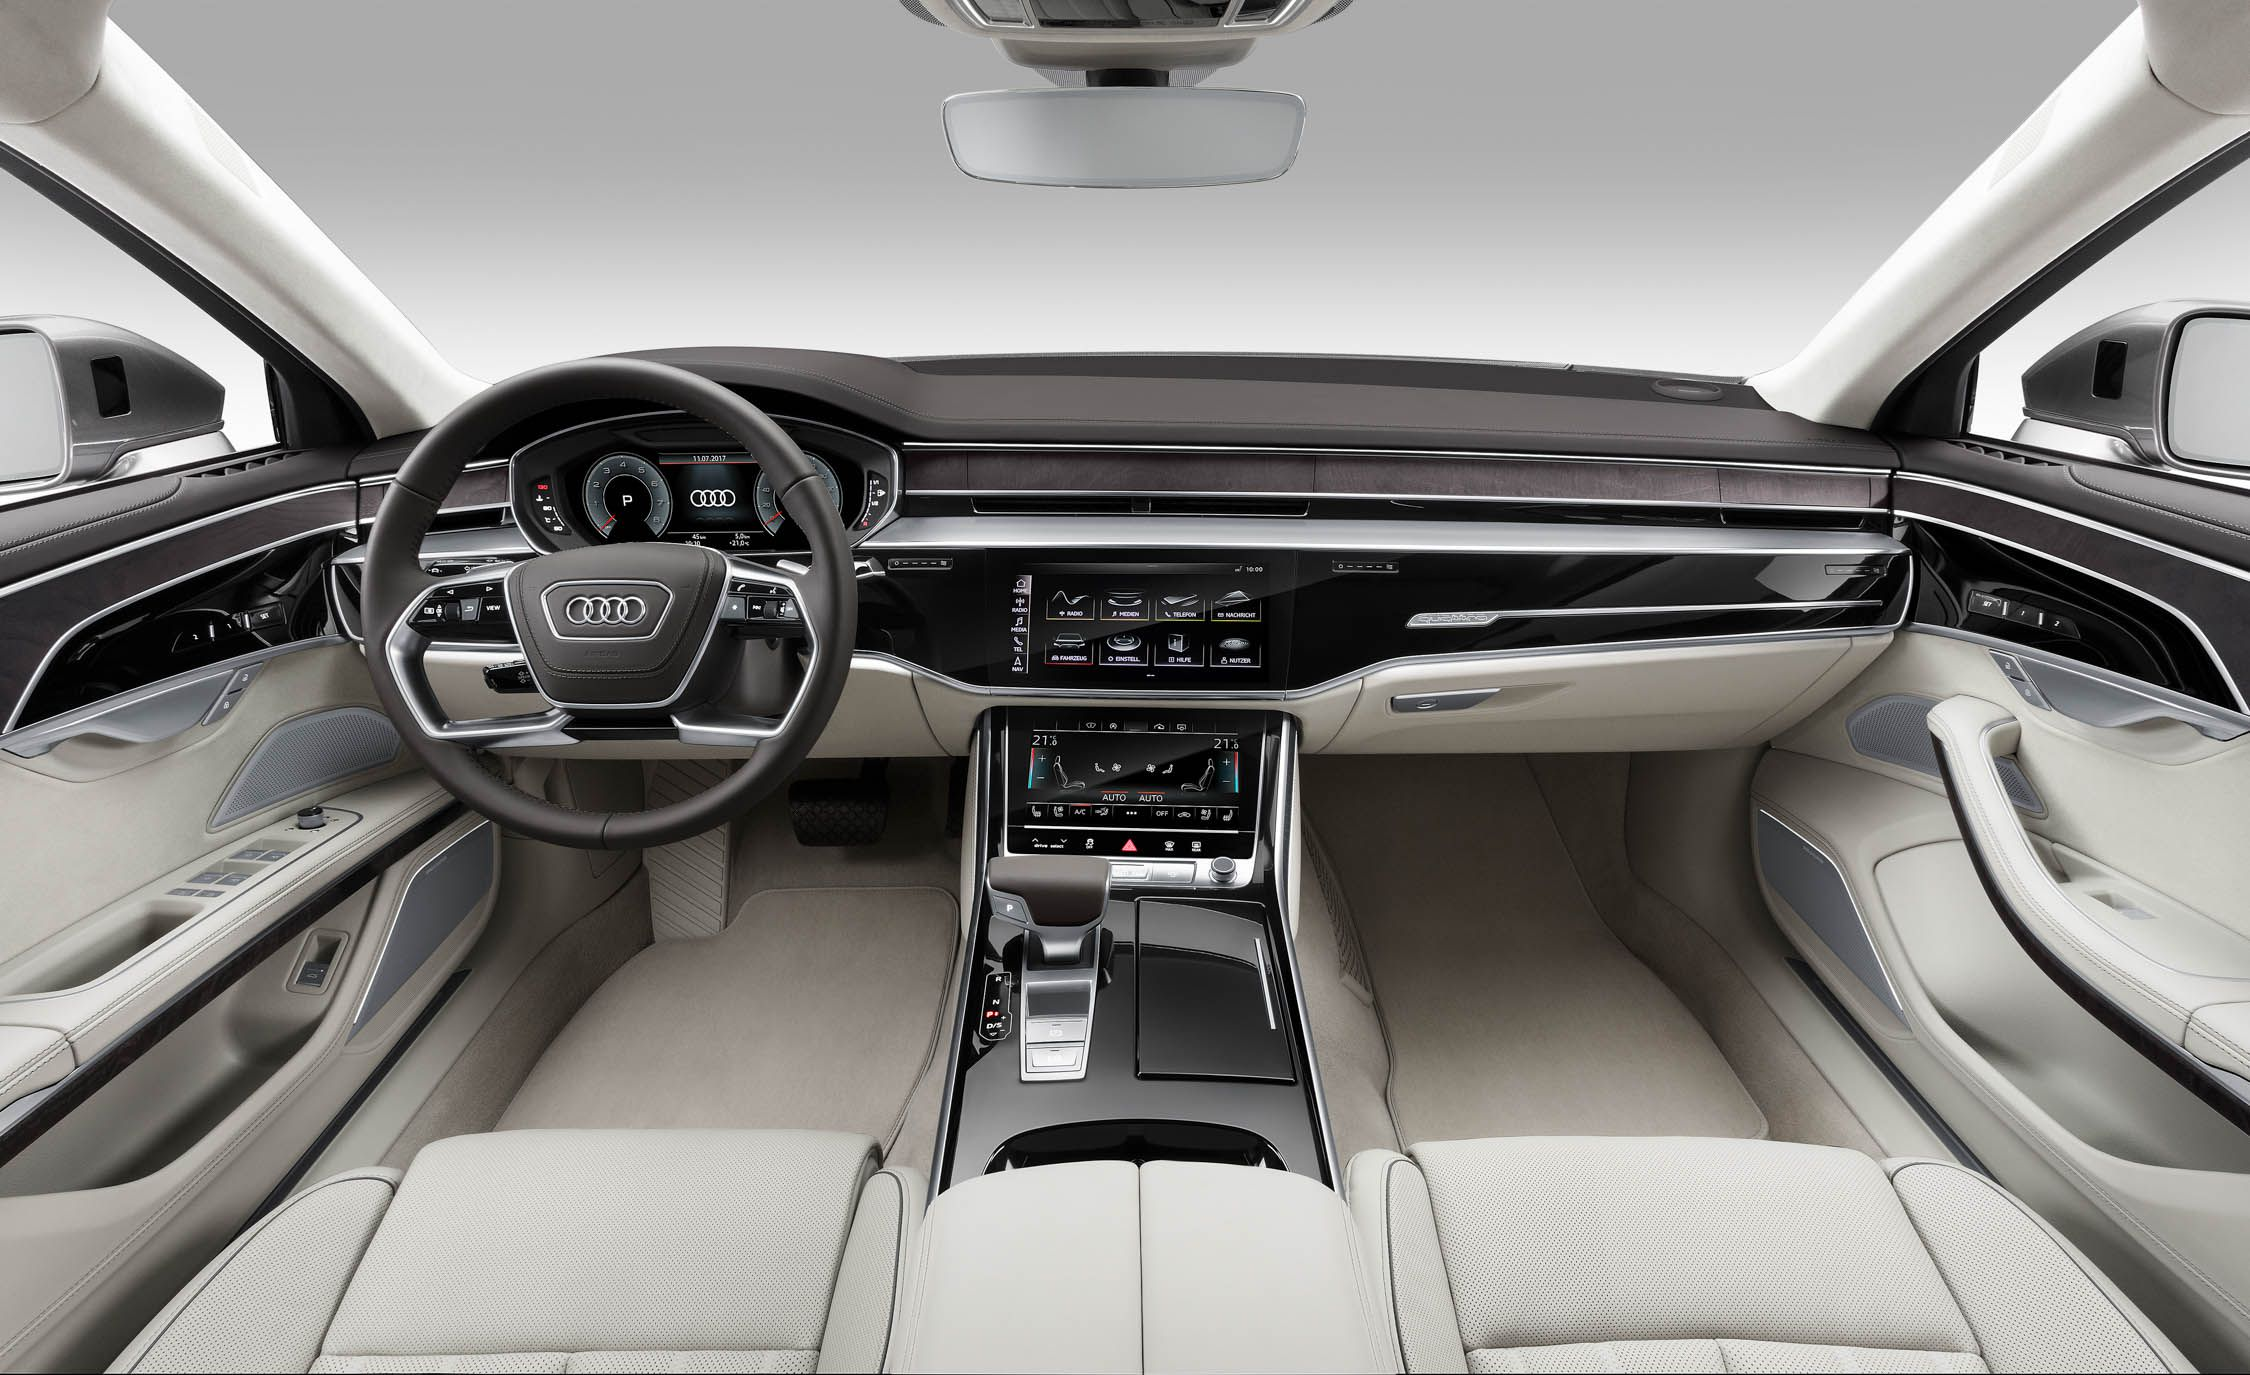 39 All New Audi A8 Concept